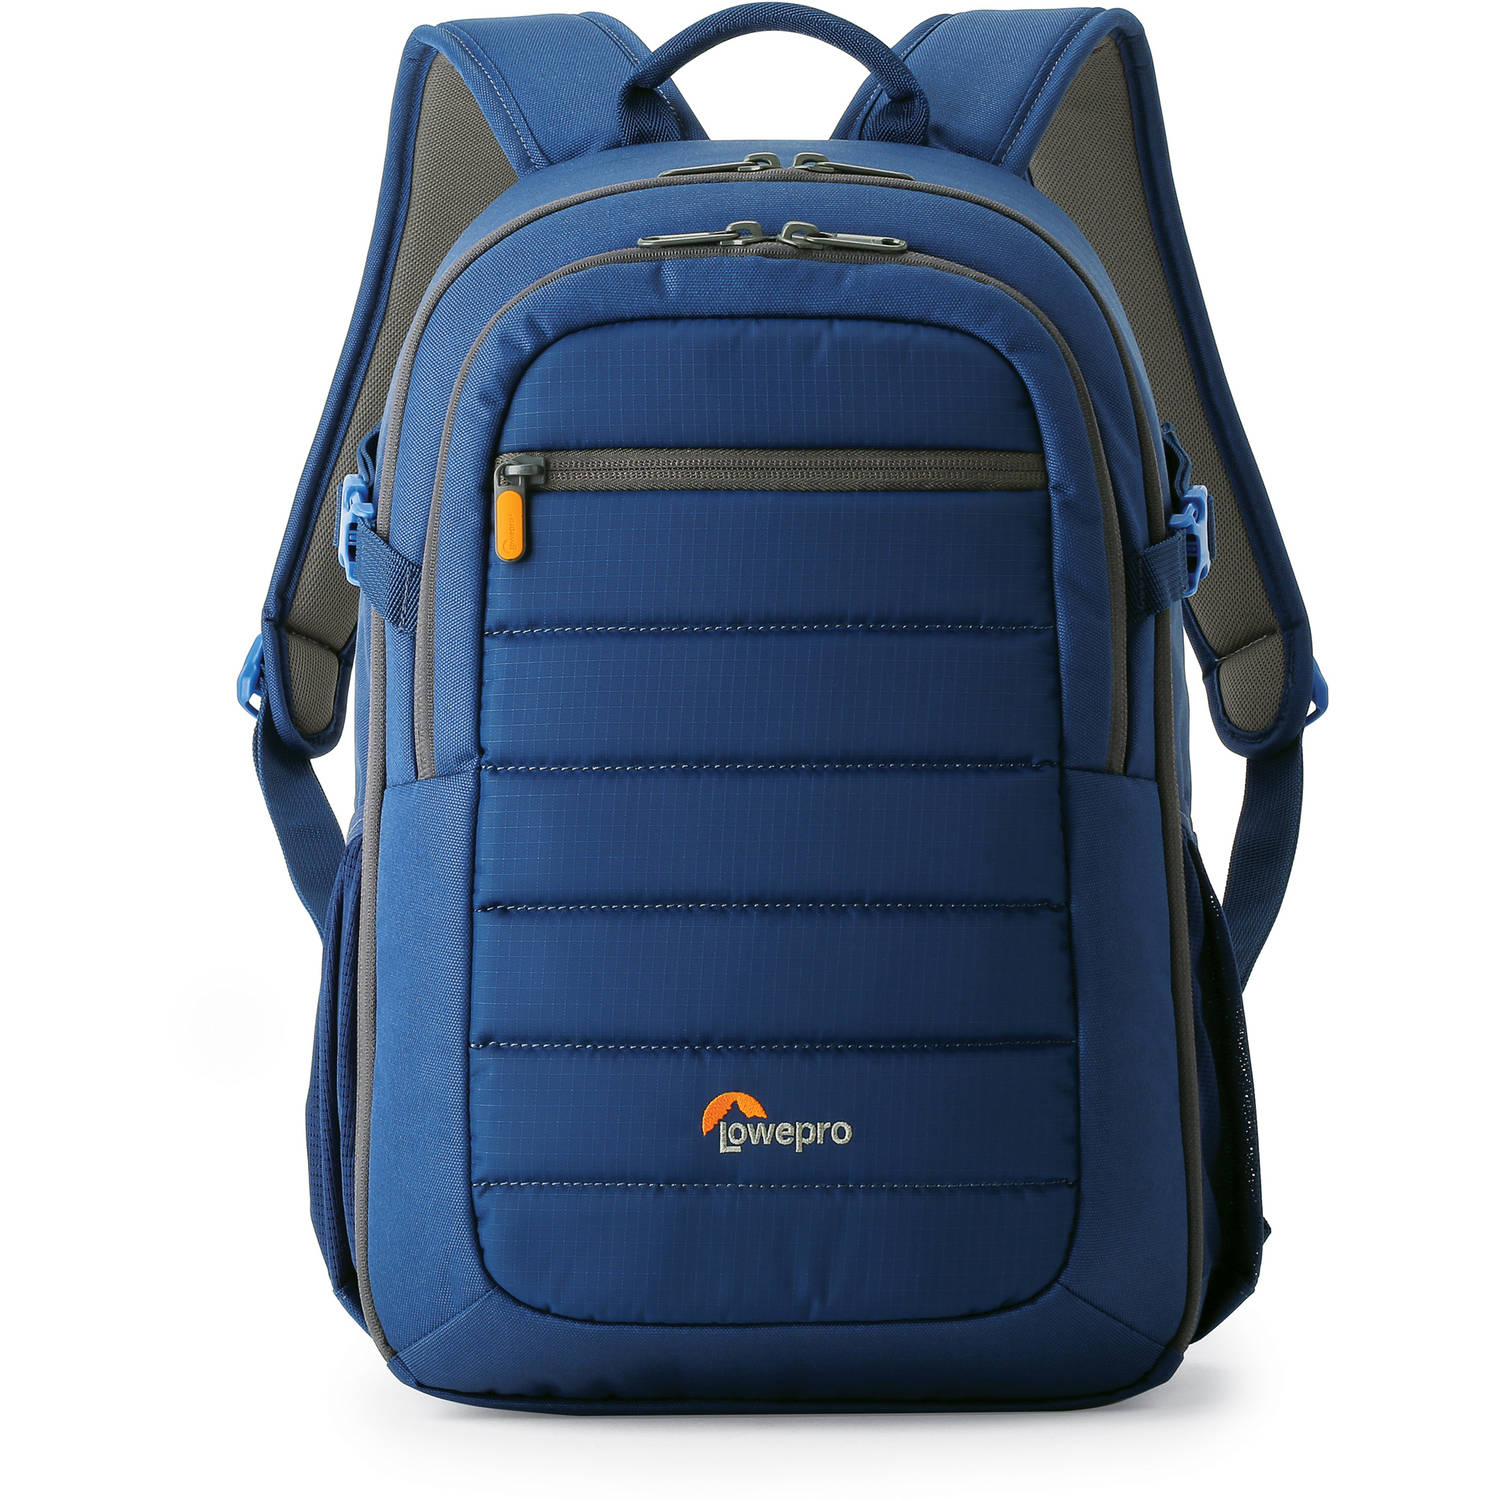 Lowepro Tahoe BP 150, Backpack Blue #LP36893